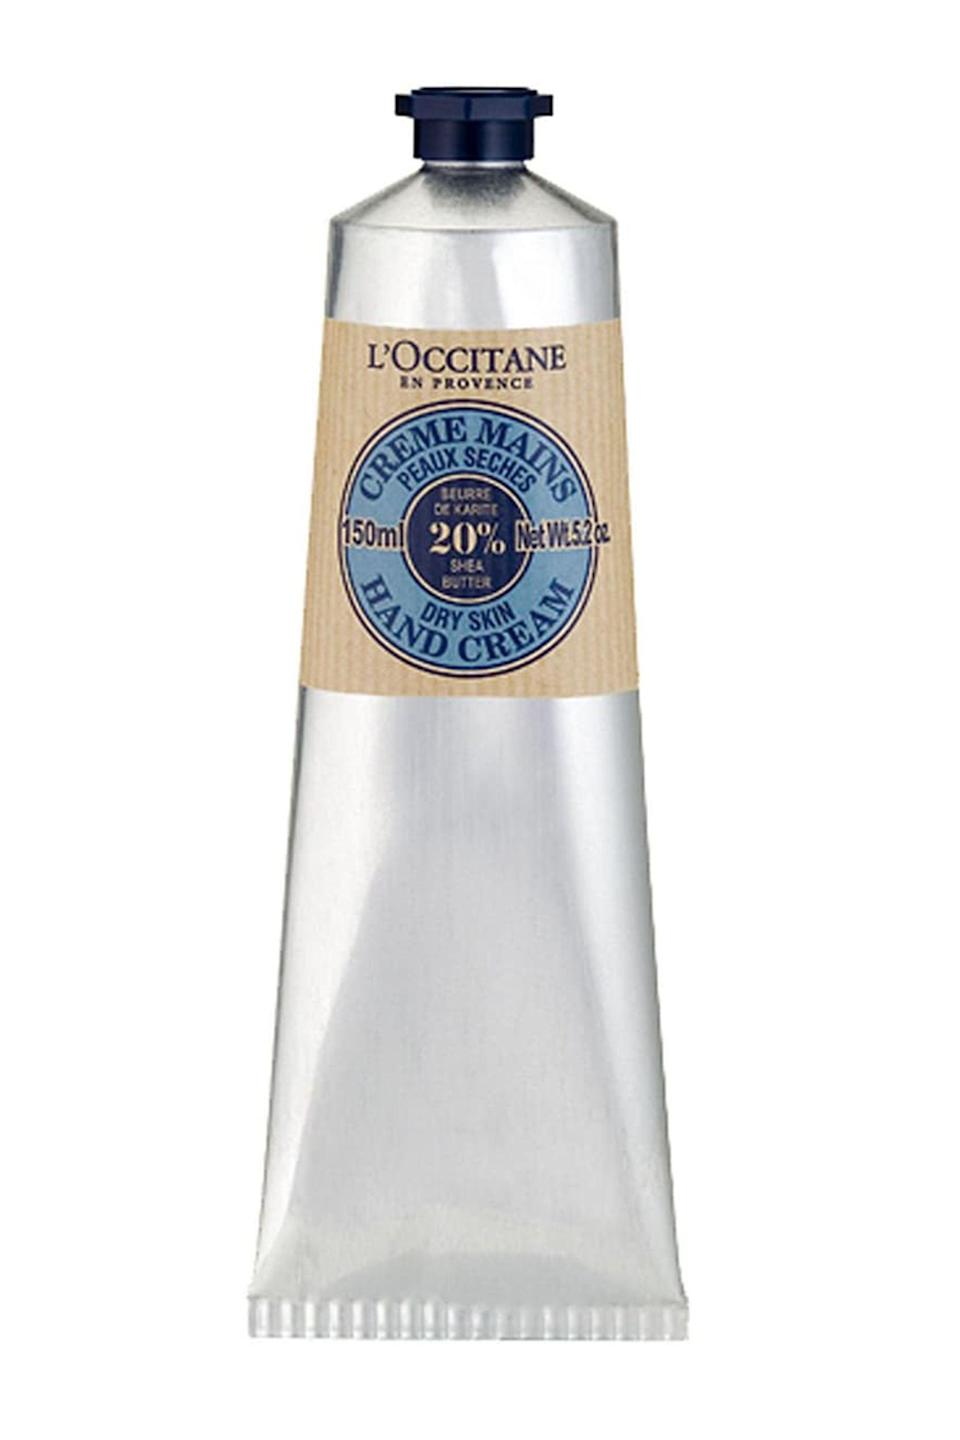 """<p><strong>L'Occitane</strong></p><p>nordstrom.com</p><p><strong>$29.00</strong></p><p><a href=""""https://go.redirectingat.com?id=74968X1596630&url=https%3A%2F%2Fwww.nordstrom.com%2Fs%2Floccitane-shea-butter-hand-cream%2F2885807&sref=https%3A%2F%2Fwww.elle.com%2Ffashion%2Fshopping%2Fg34764690%2Feco-friendly-gift-ideas%2F"""" rel=""""nofollow noopener"""" target=""""_blank"""" data-ylk=""""slk:Shop Now"""" class=""""link rapid-noclick-resp"""">Shop Now</a></p><p>After months of vigorously washing up, a luxurious hand cream is a no-brainer gift. This one in particular won <a href=""""https://www.goodhousekeeping.com/beauty-products/a29459394/best-sustainable-packaging-brands/"""" rel=""""nofollow noopener"""" target=""""_blank"""" data-ylk=""""slk:a Good Housekeeping award"""" class=""""link rapid-noclick-resp"""">a Good Housekeeping award</a> for its sustainable, recyclable packaging.</p>"""